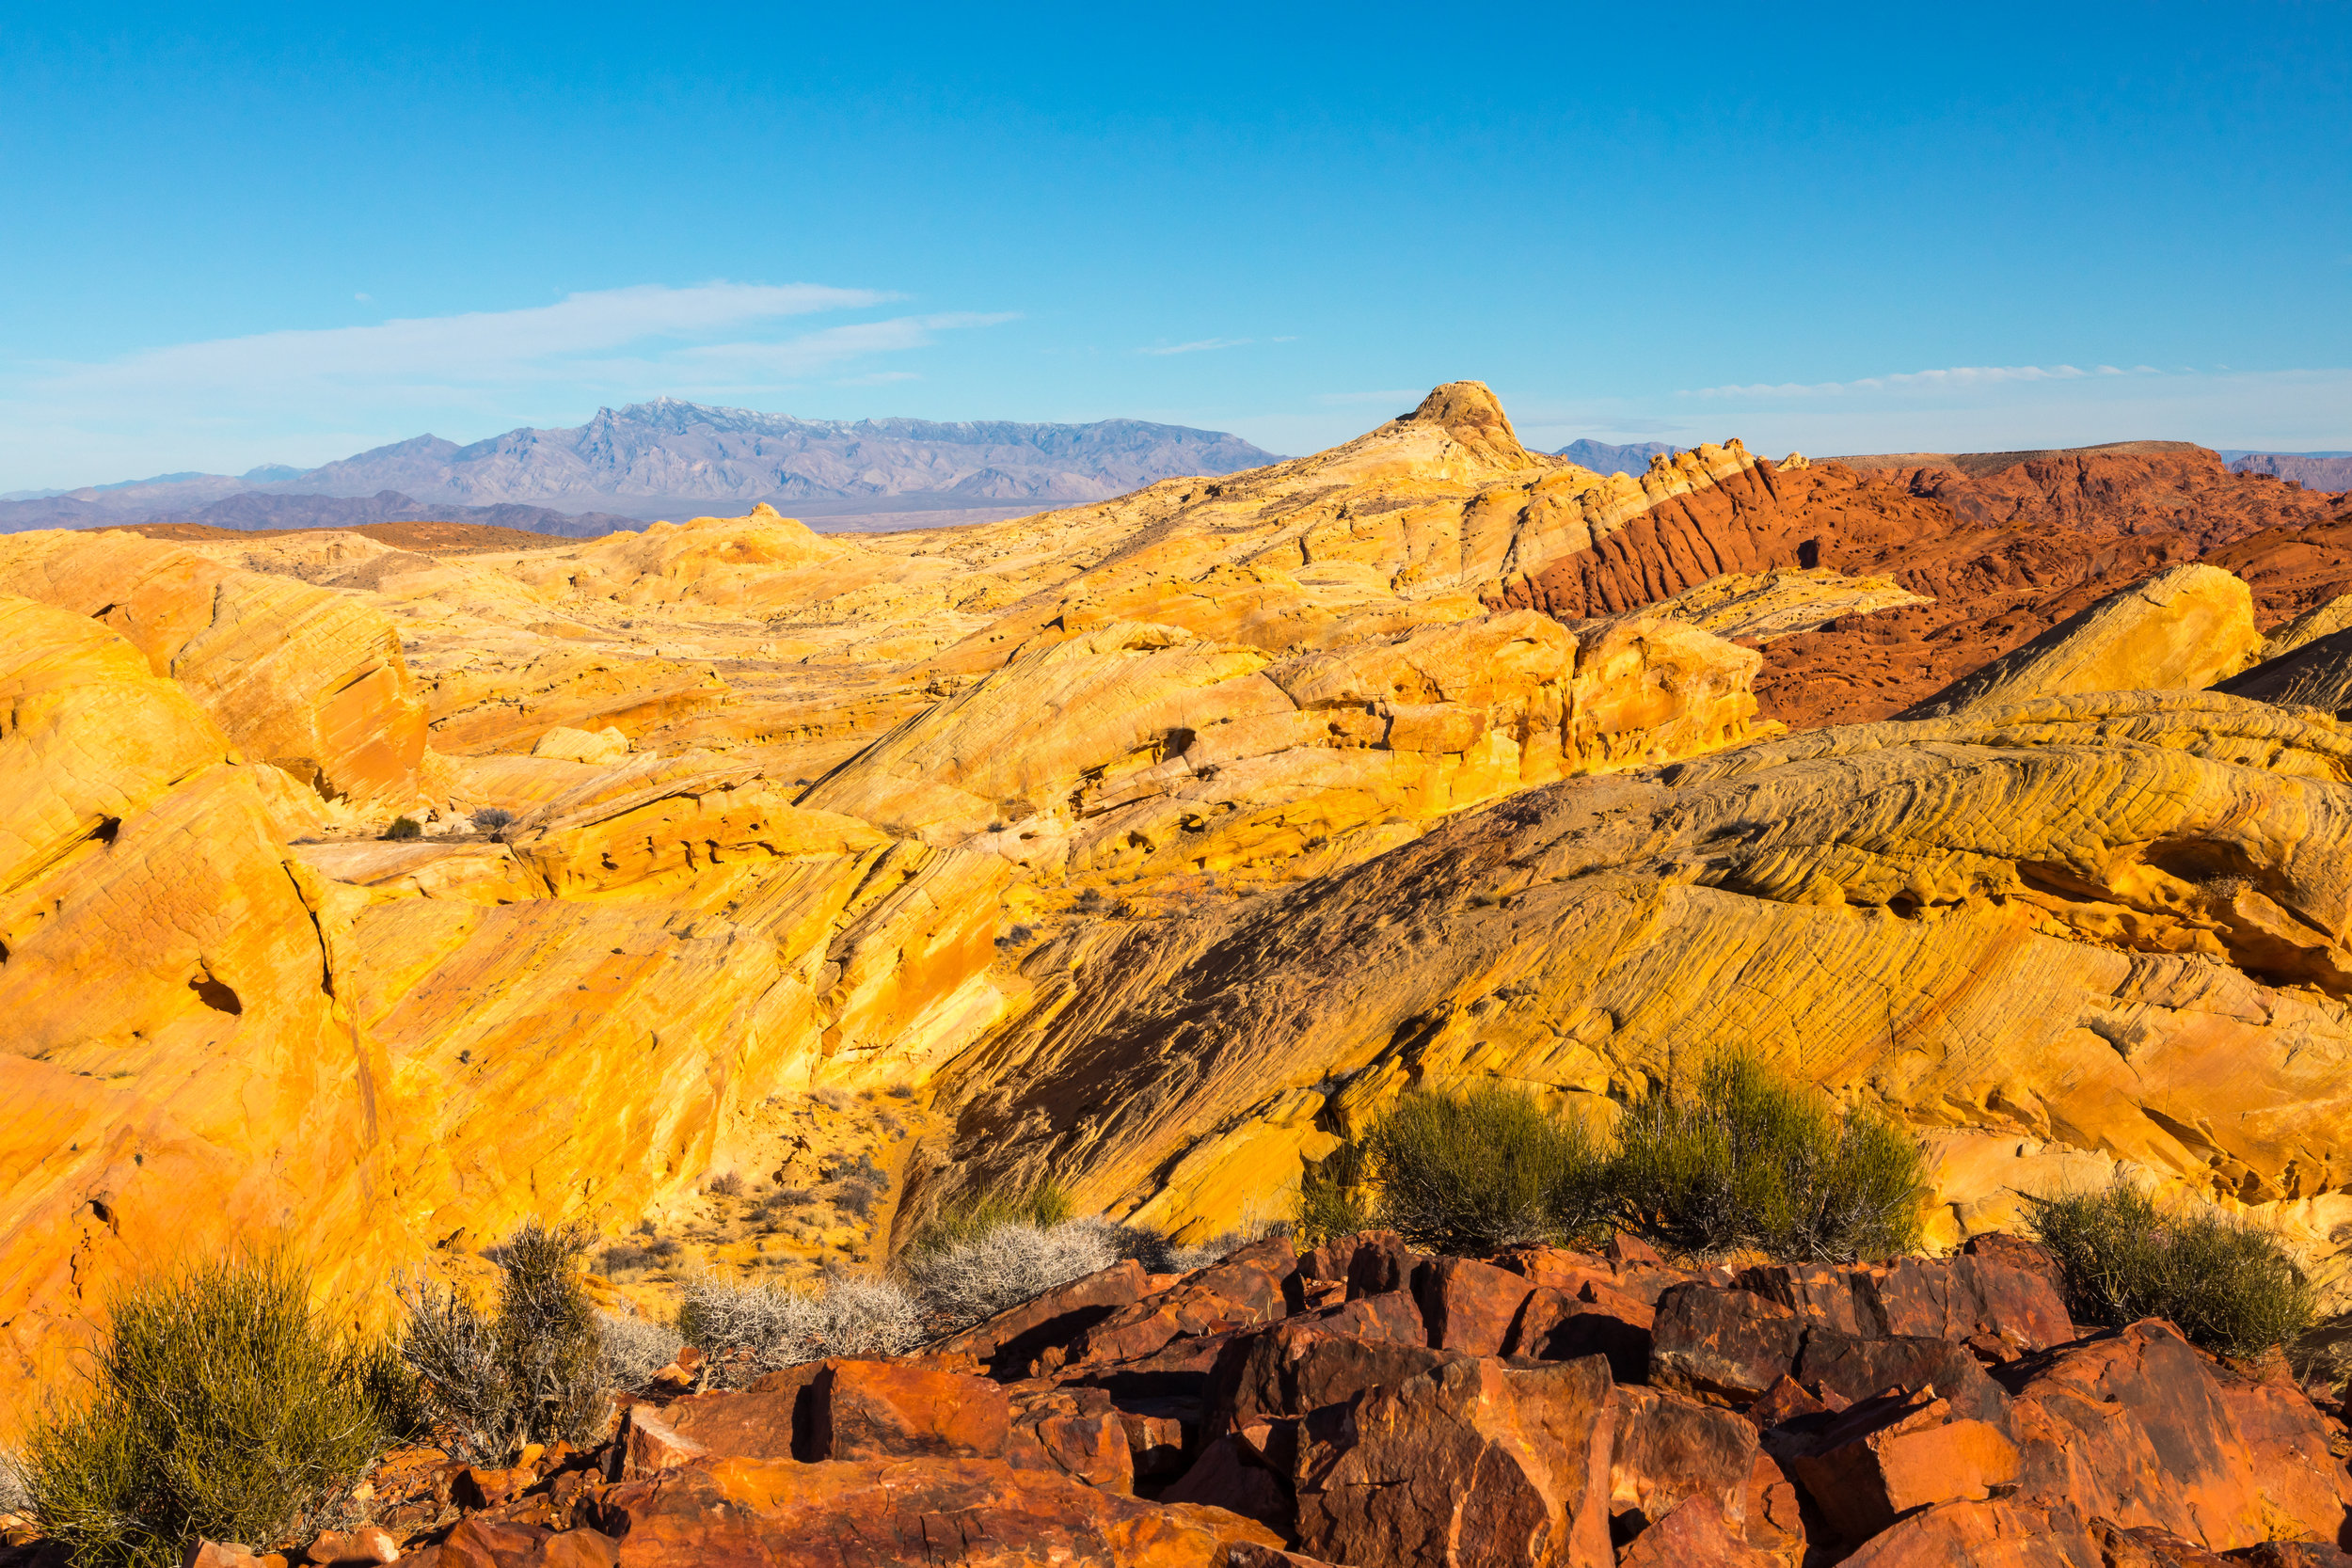 Valley of Fire, Image # 1989